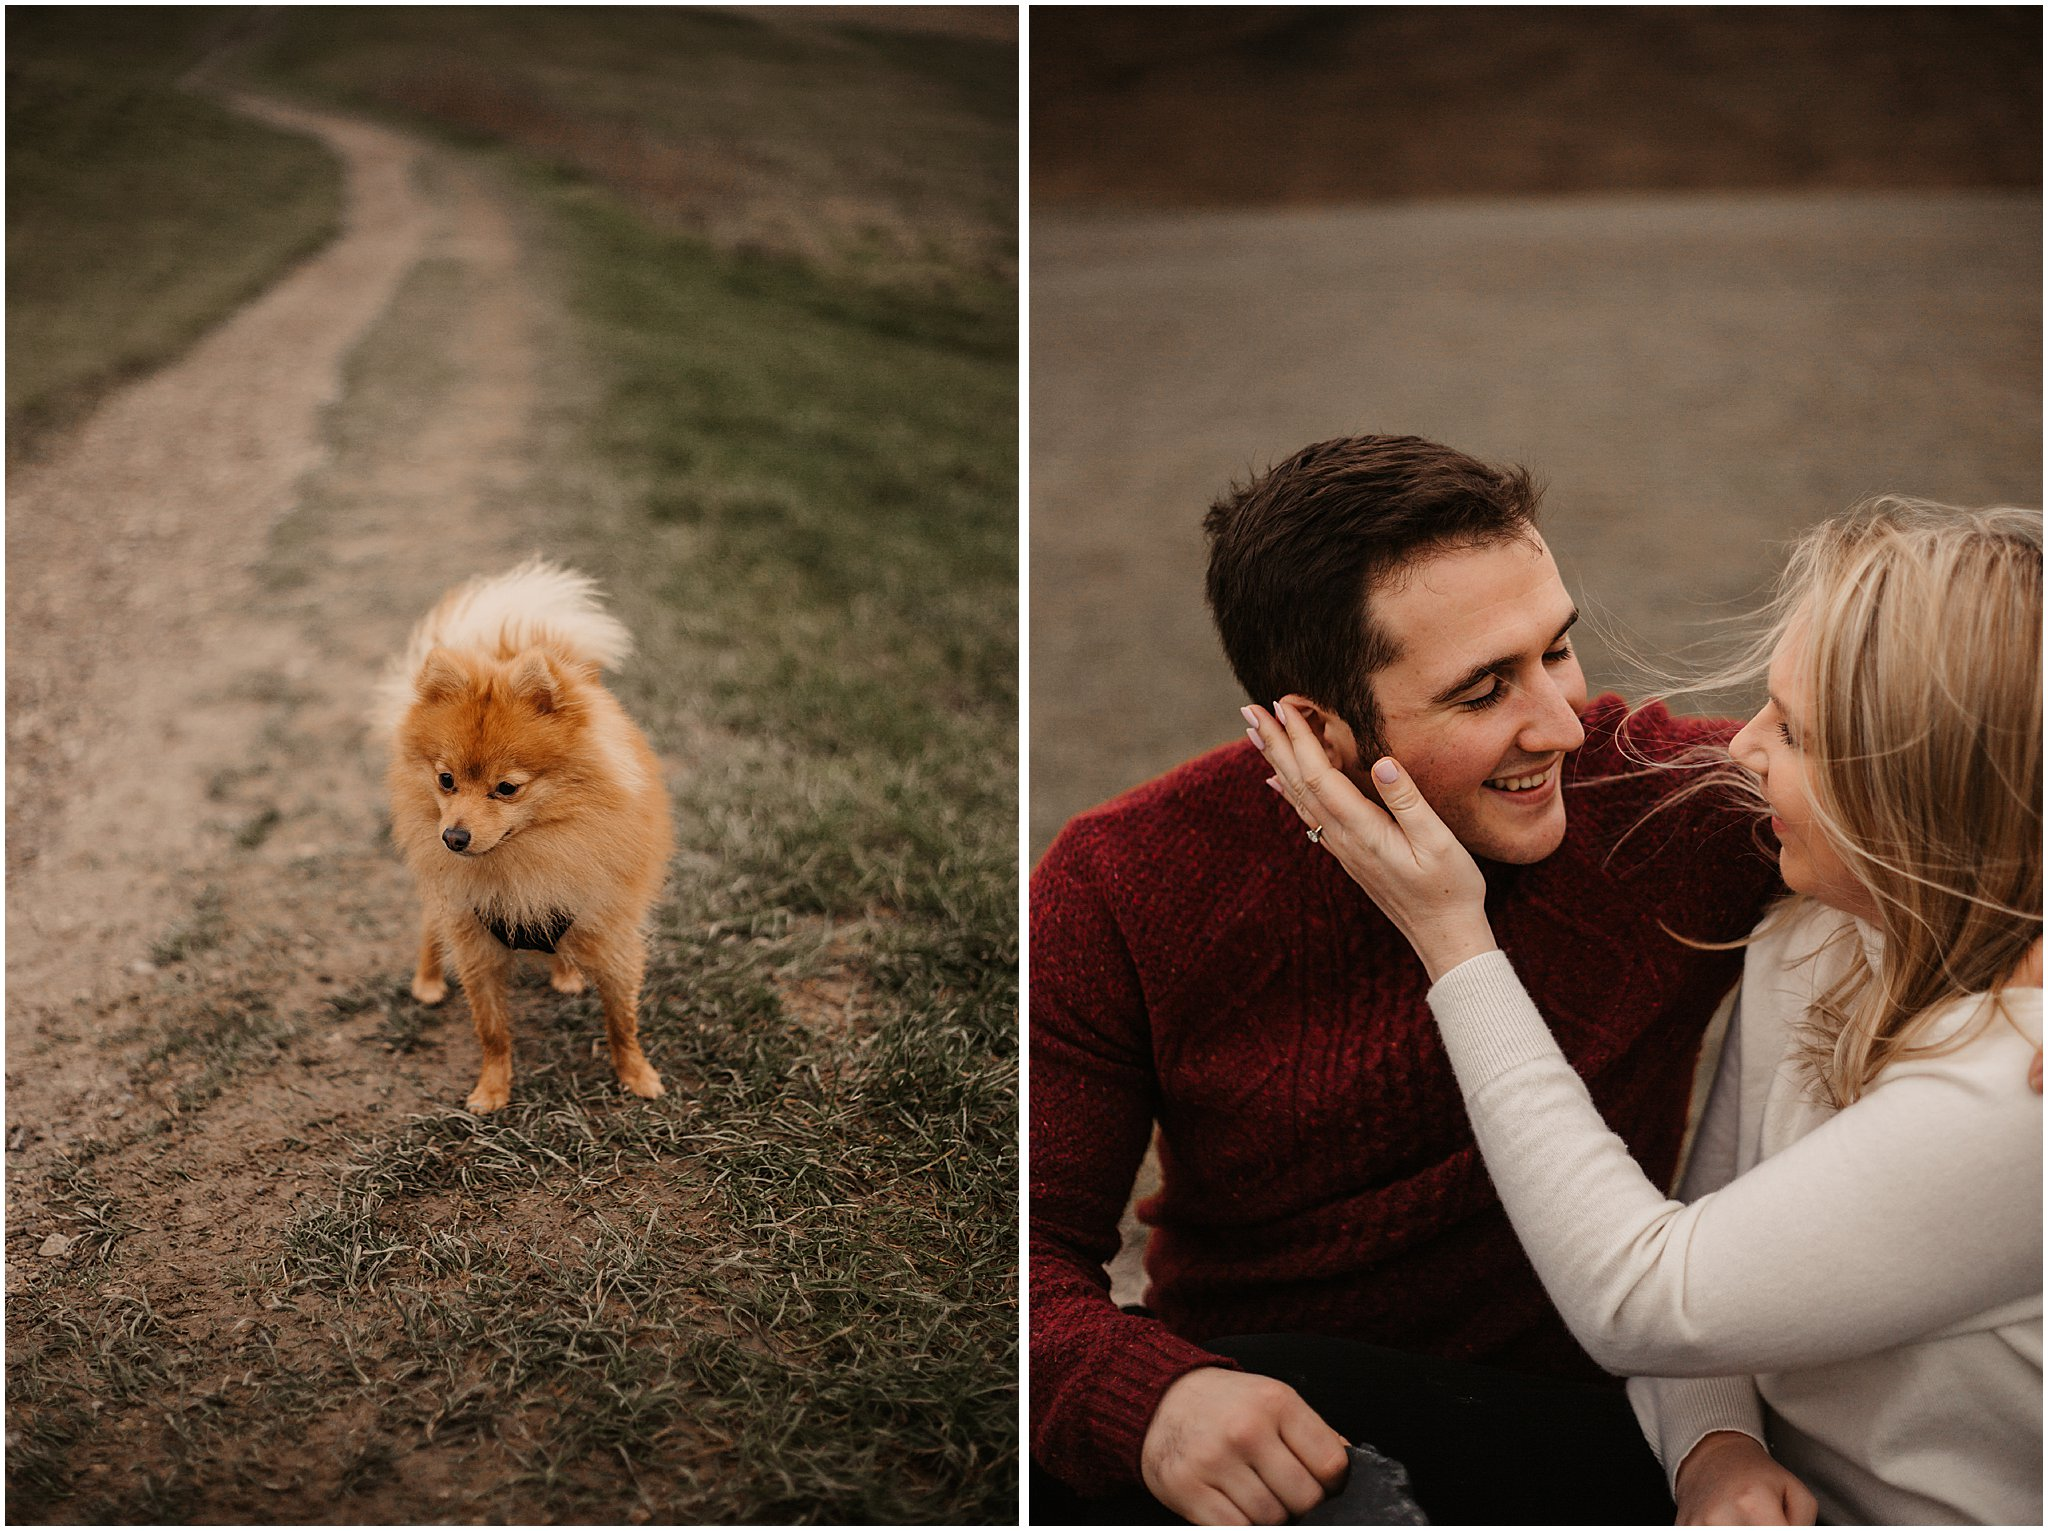 Mike & Charley_s Winter Engagement Shoot Wiltshire-37.jpg